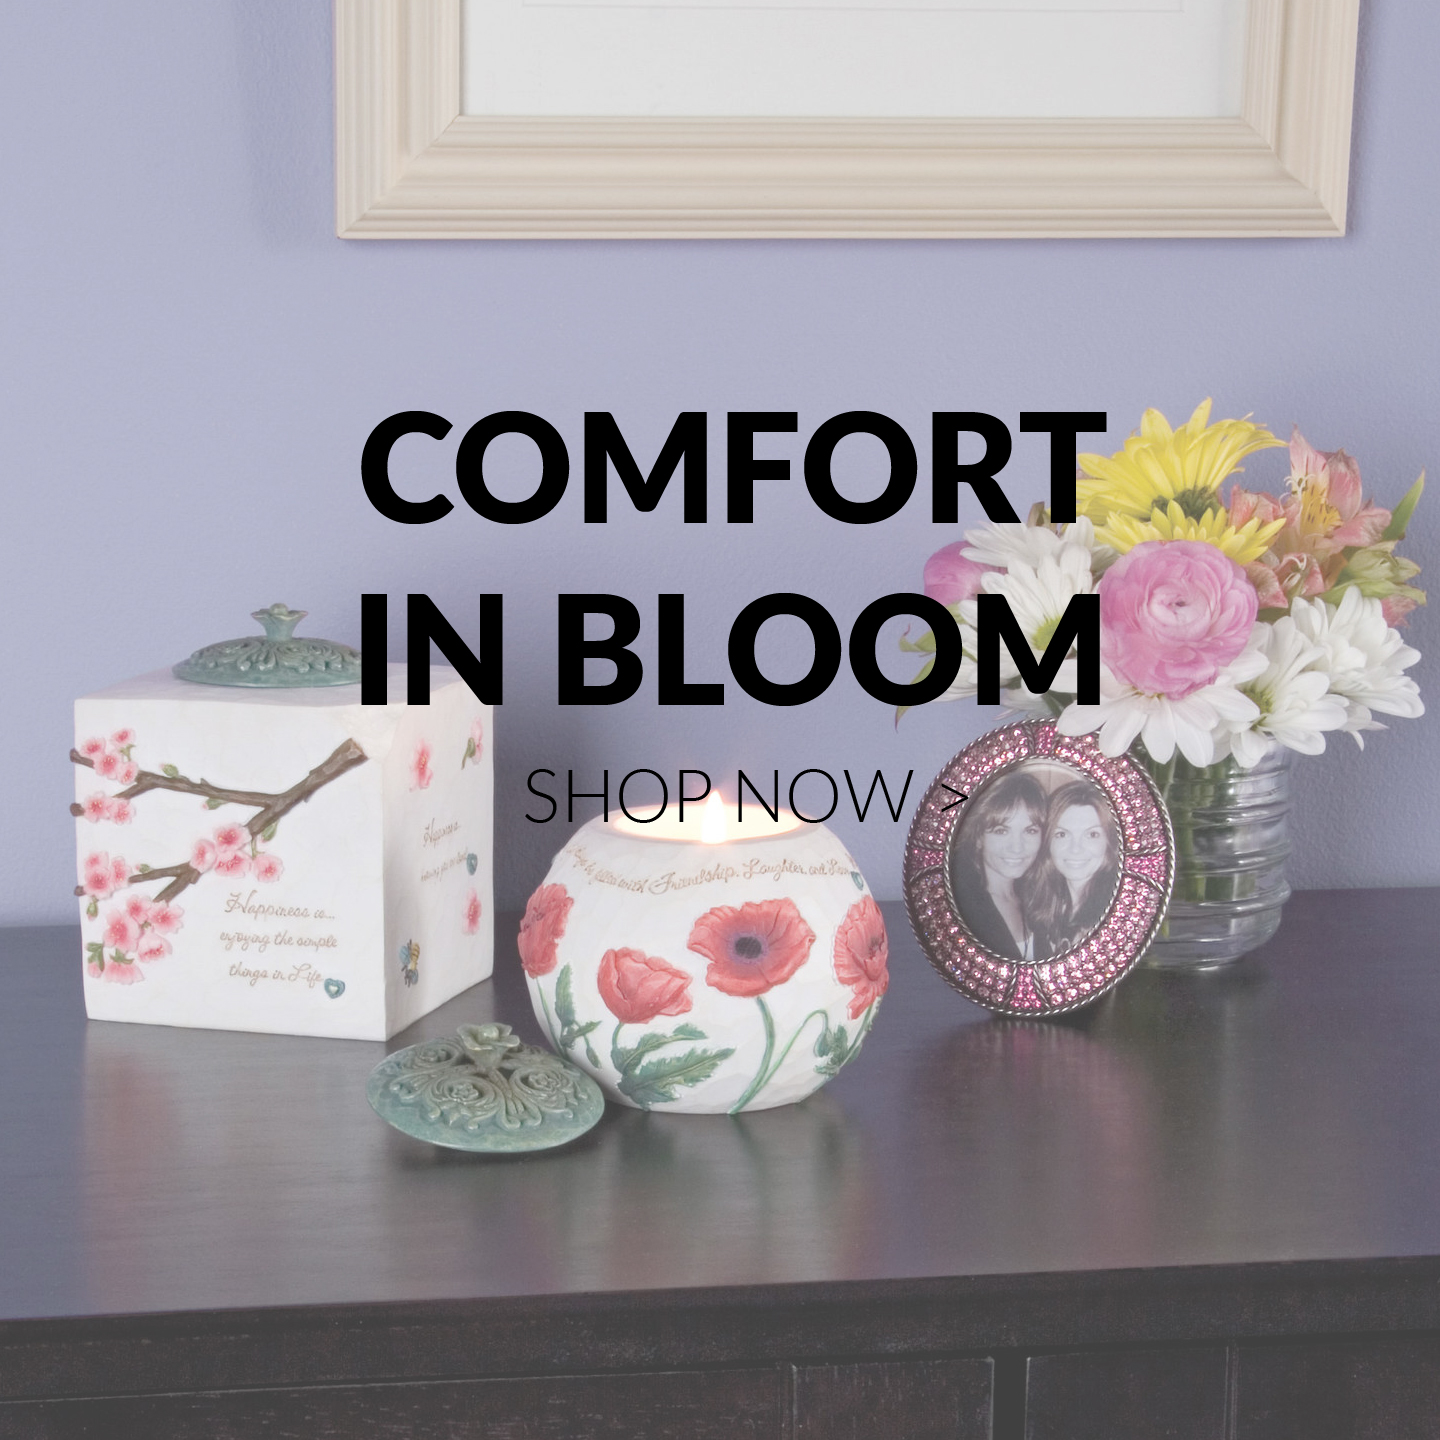 Comfort in Bloom